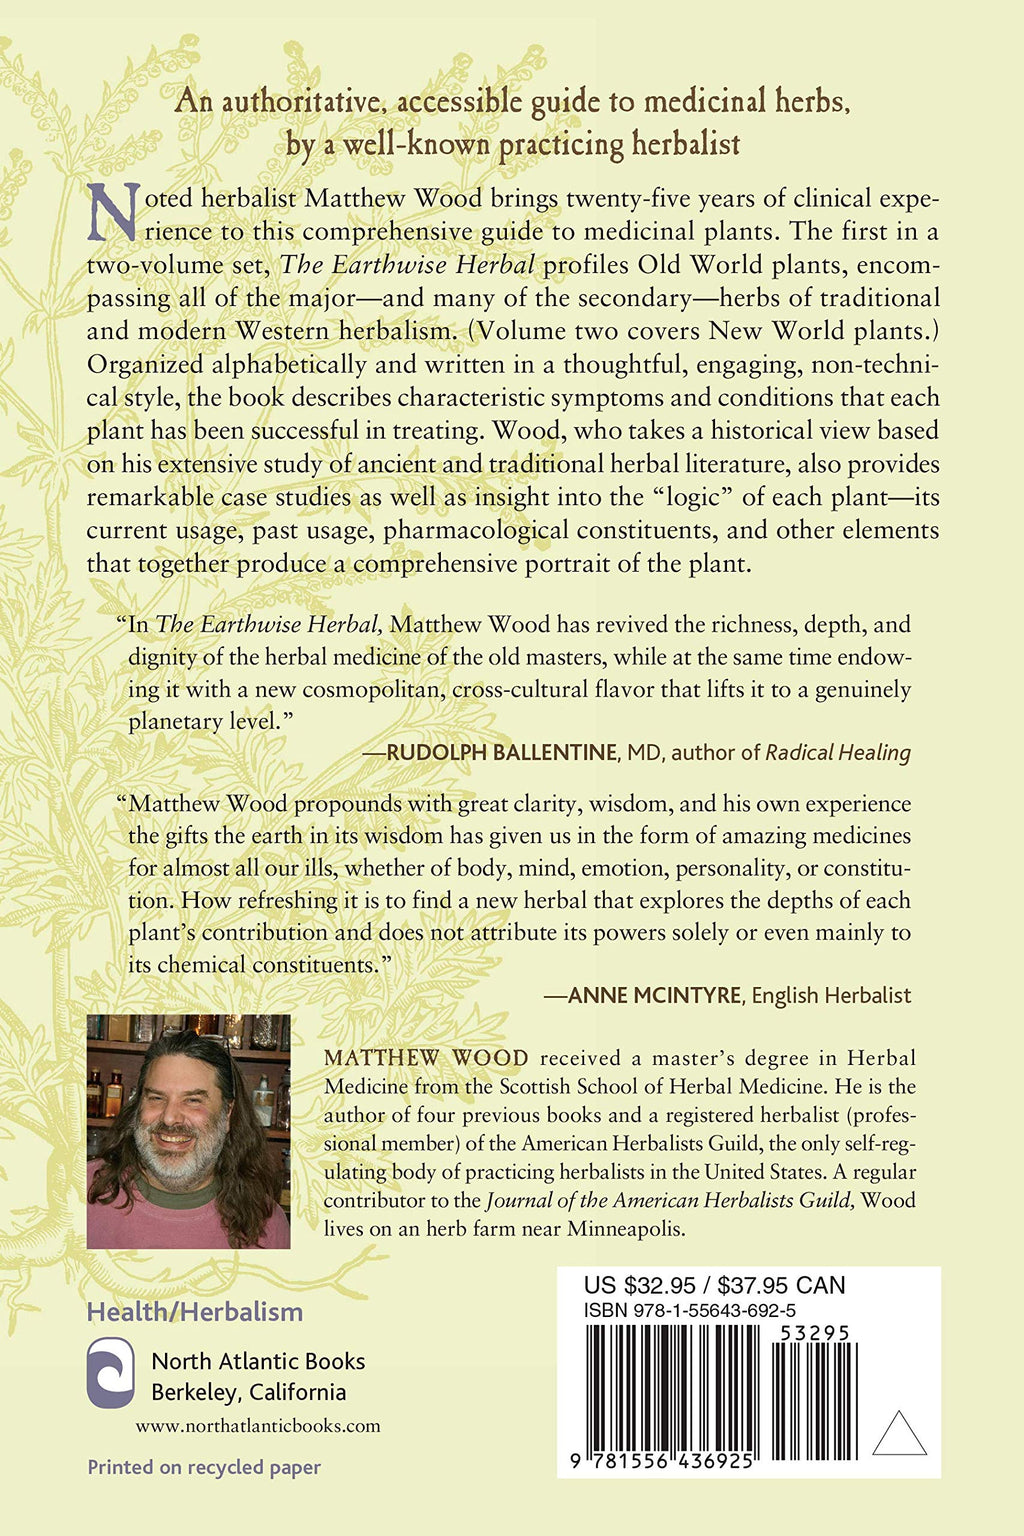 Earthwise Herbal, Volume I by Matthew Wood